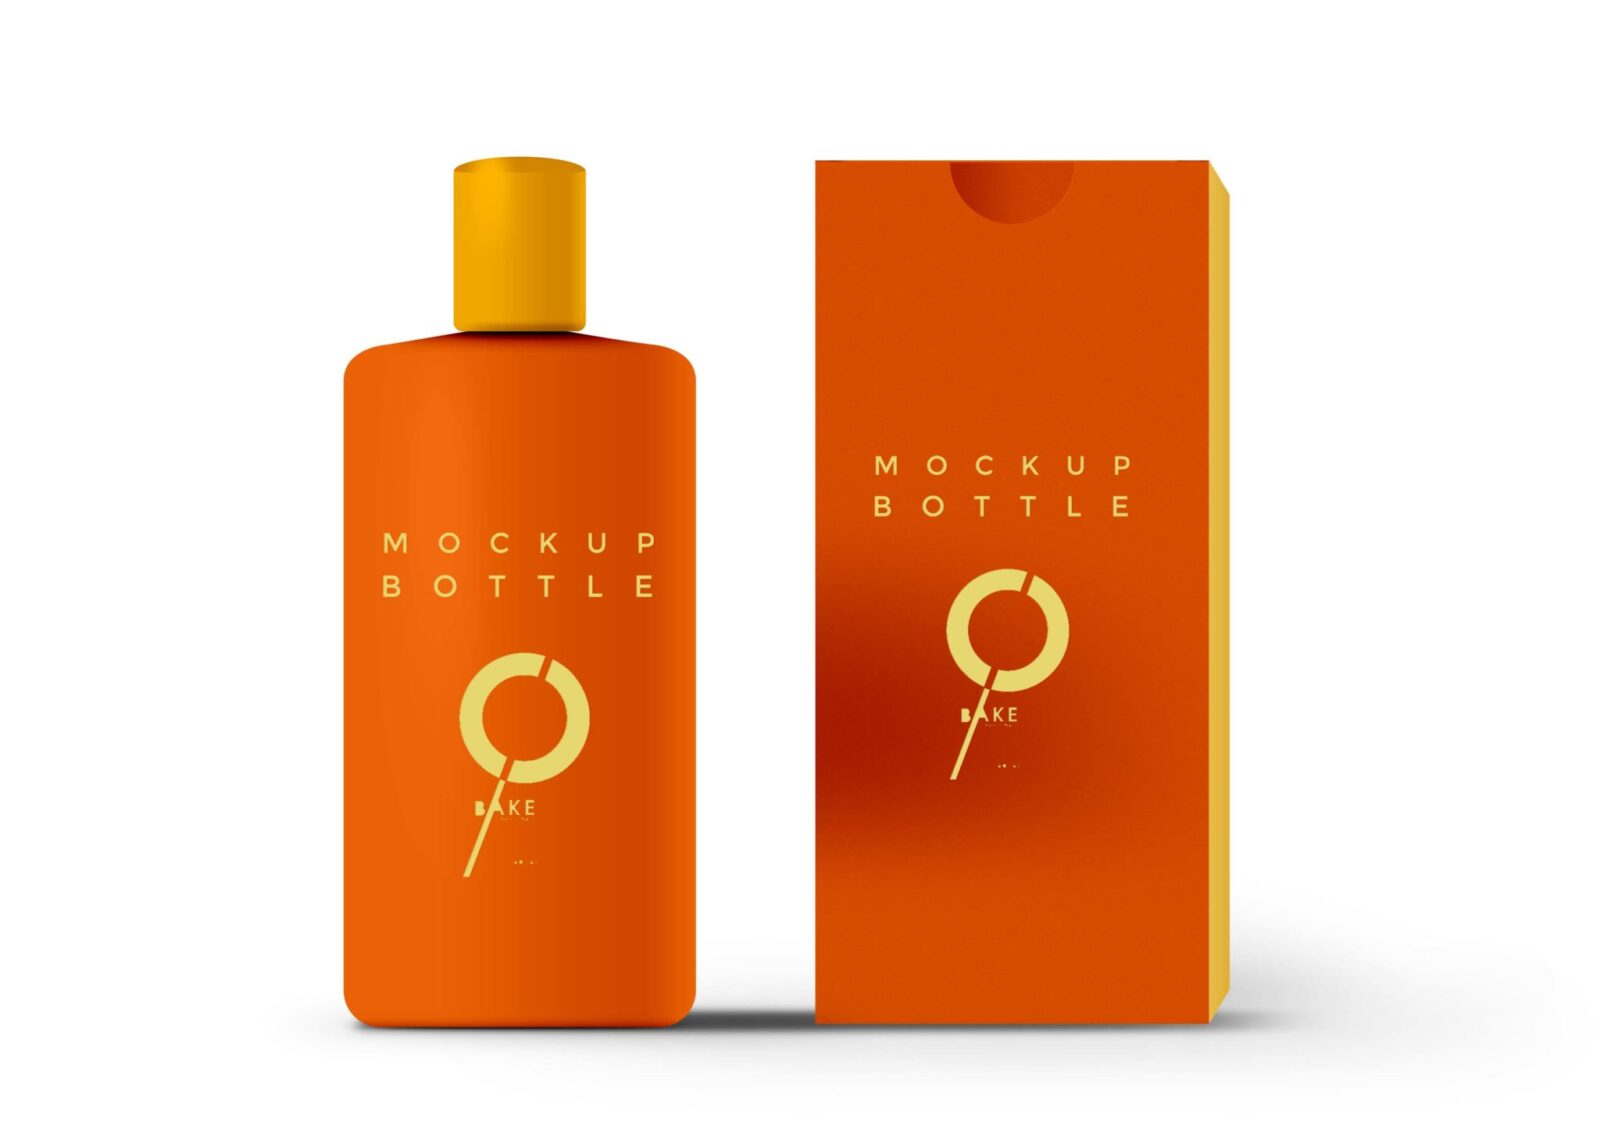 Golden Lotion Bottle Packaging Mockup